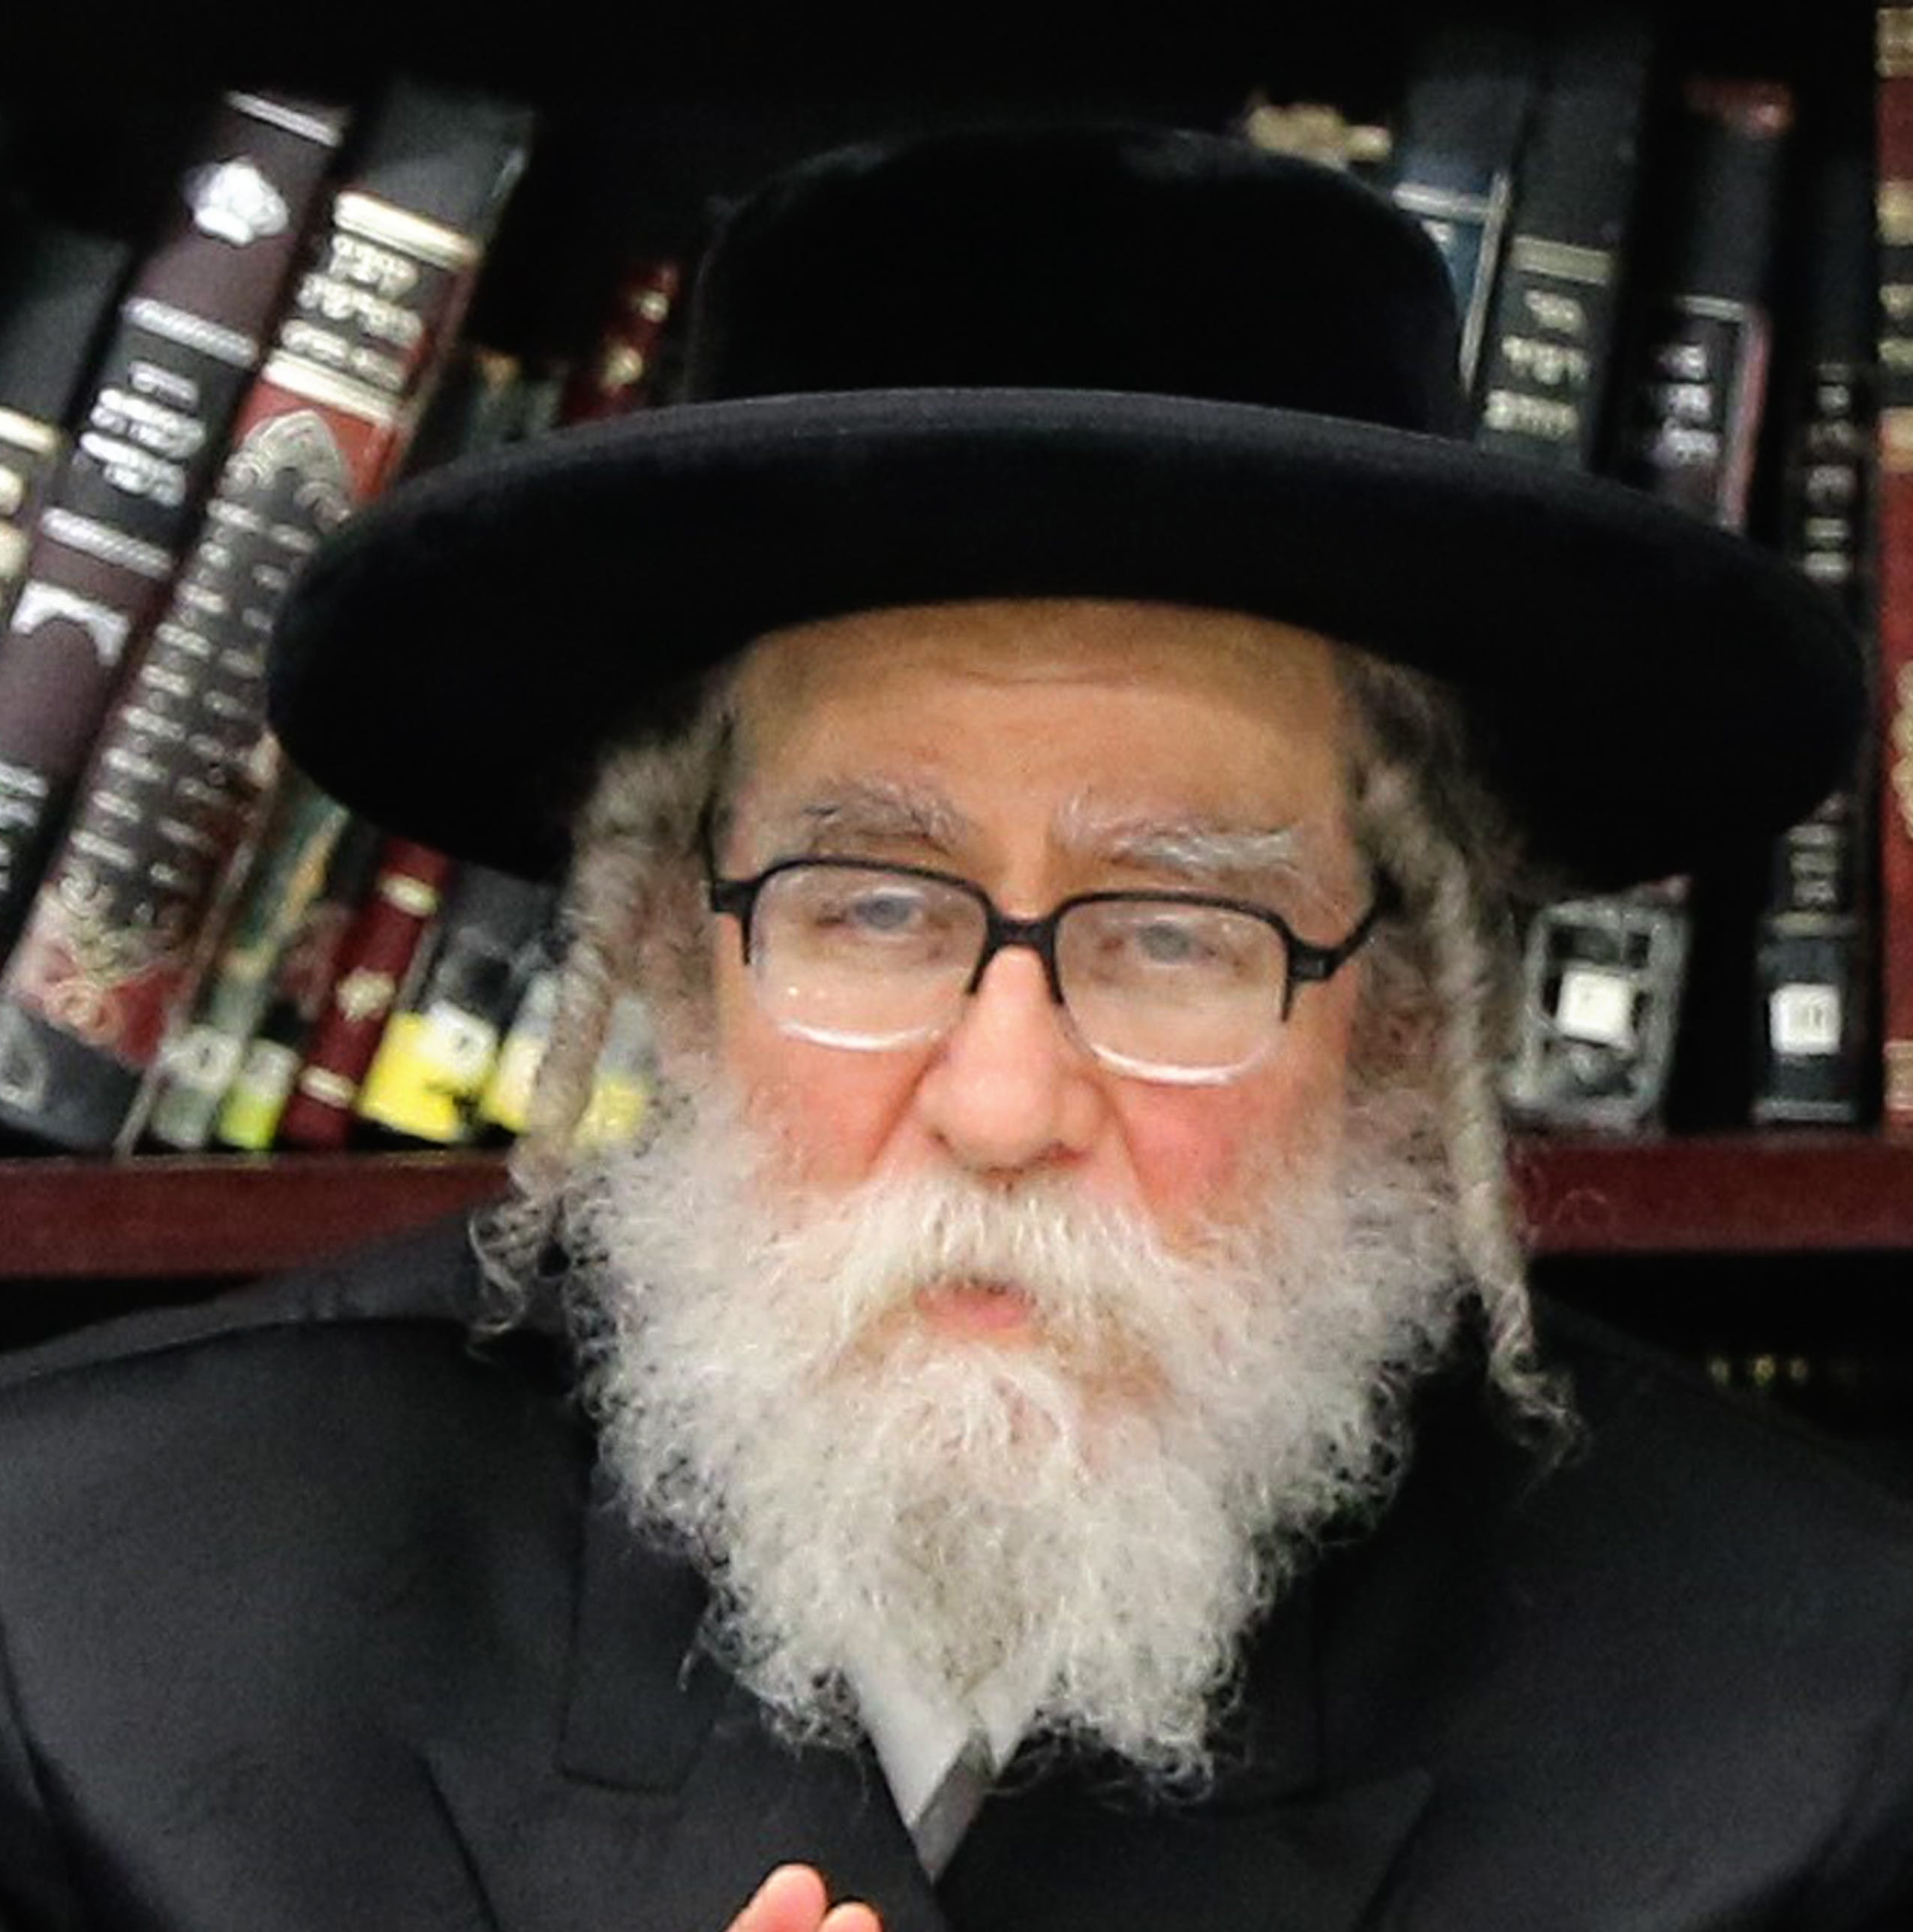 Monsey Hasidic group battles anti-Semitism tied to measles outbreak